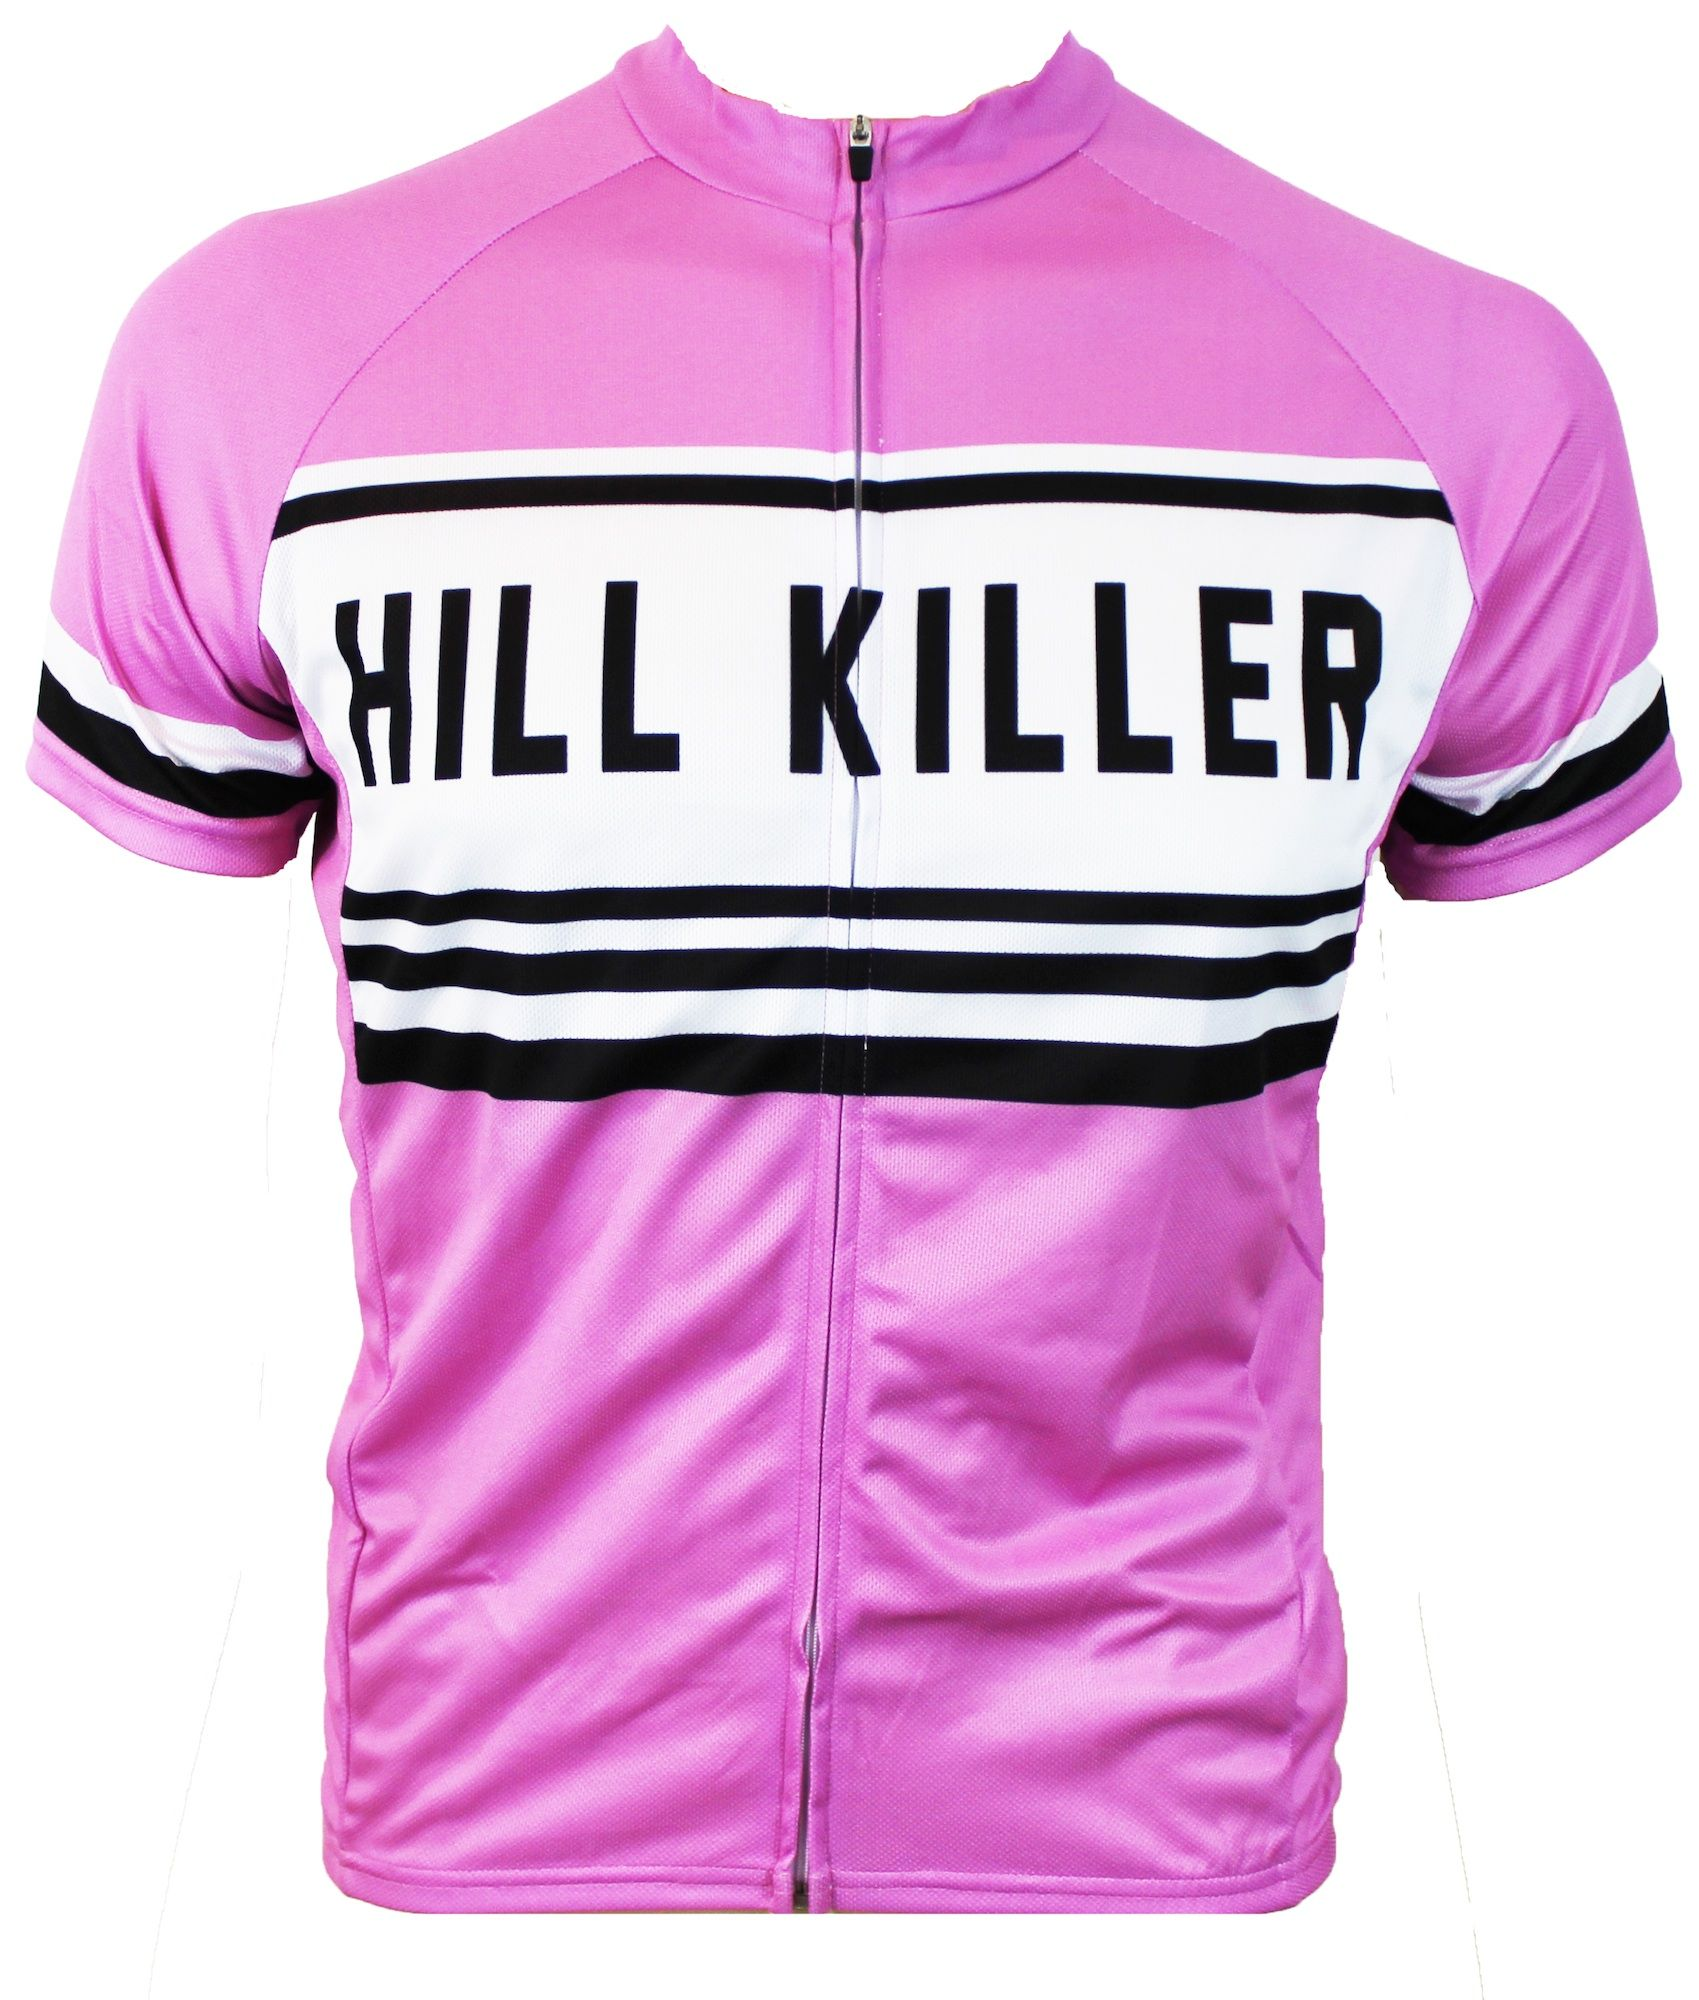 Freedom isn t free cycling jersey - Real Men Wears Pink Cycling Jersey Hill Killer